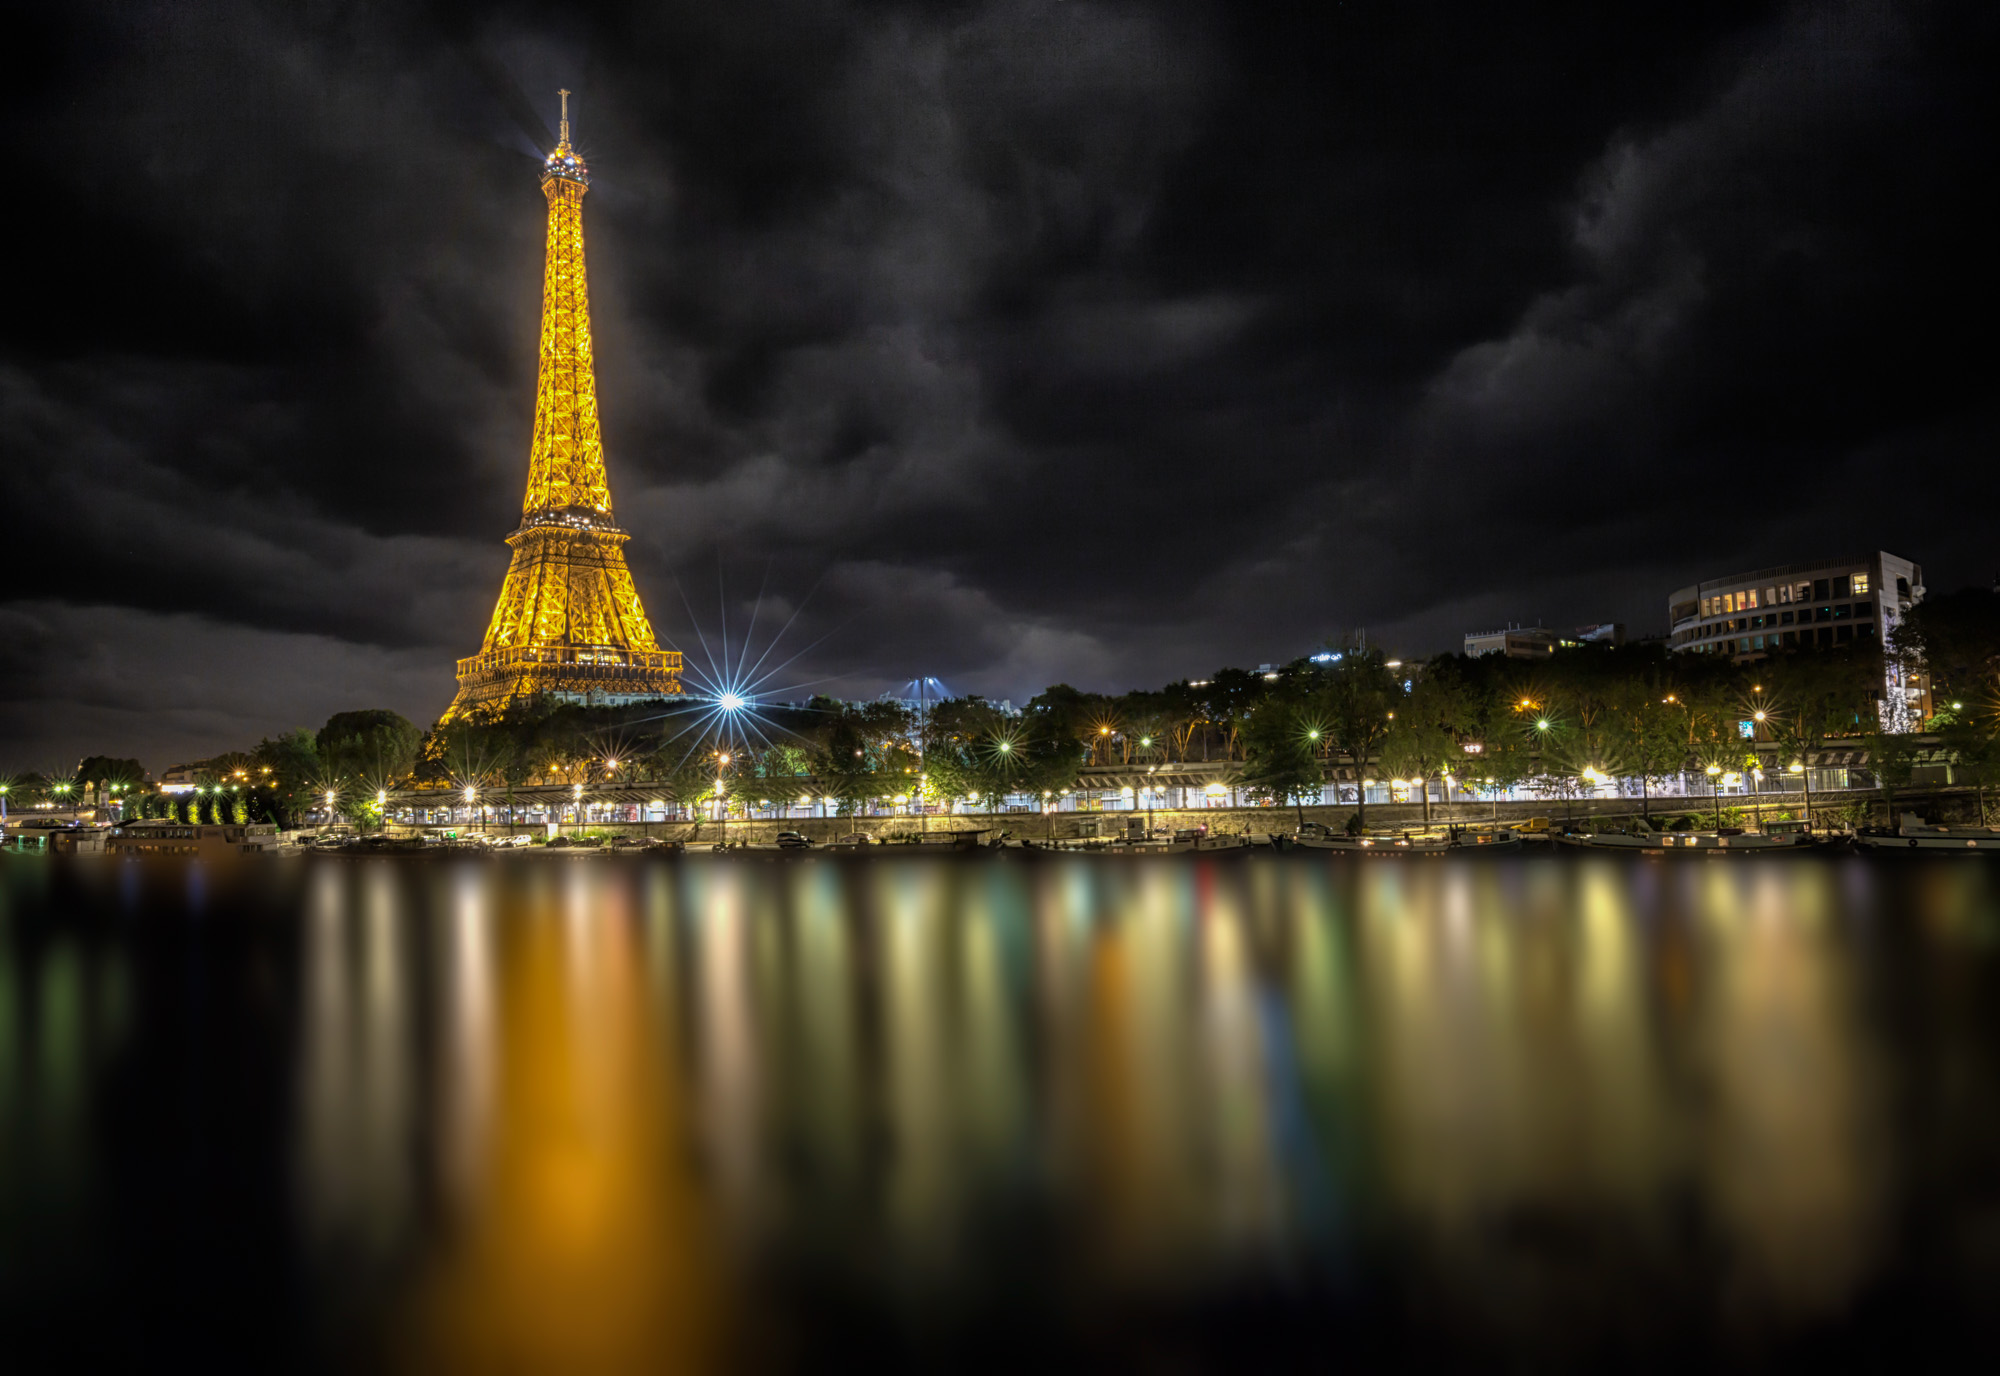 long exposure night photography of the Eiffel Tower and Paris lights at night viewed from the River Seine